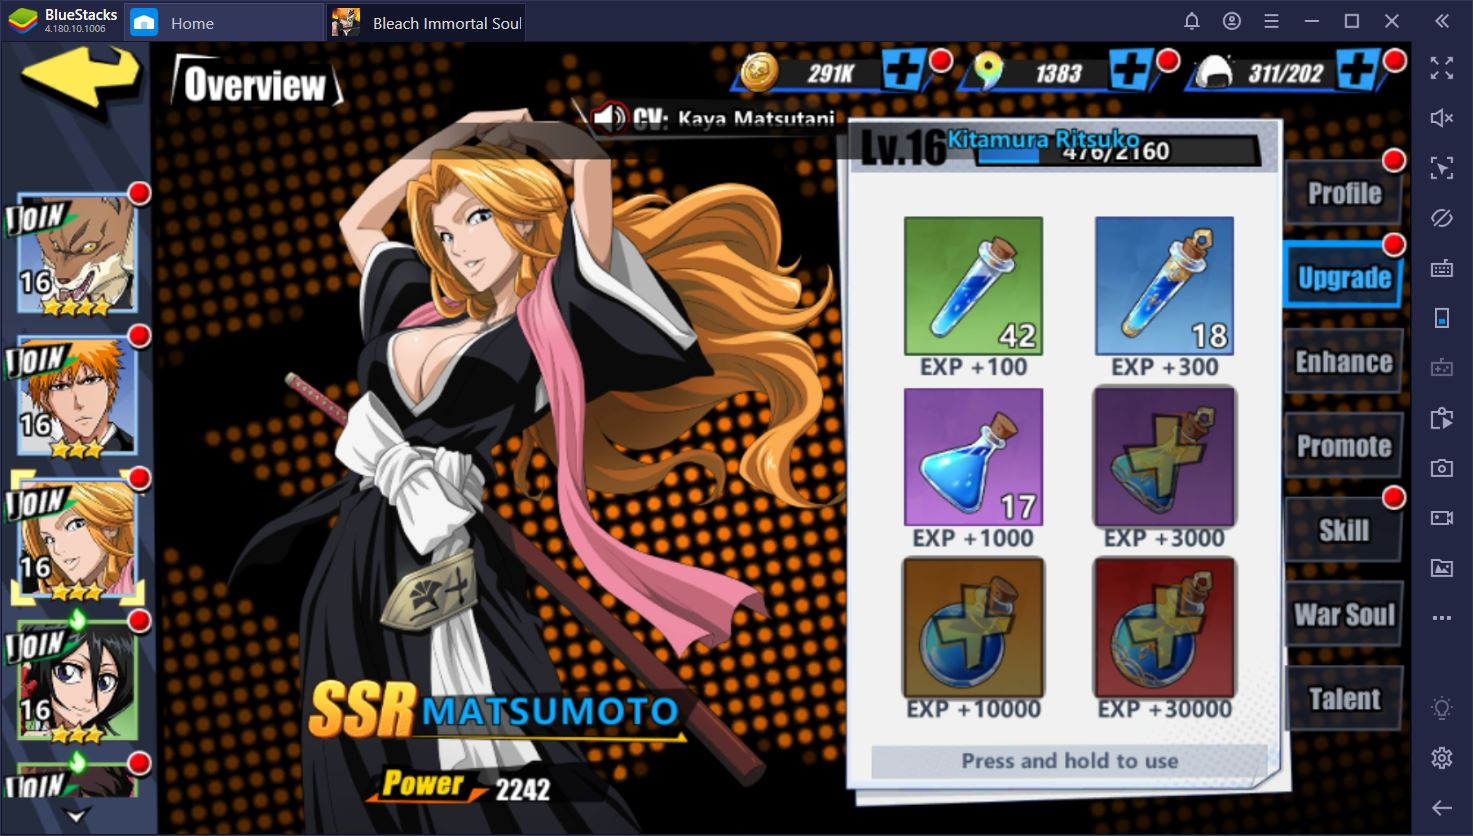 Bleach: Immortal Soul on PC – How to Upgrade Characters and Increase Your SP